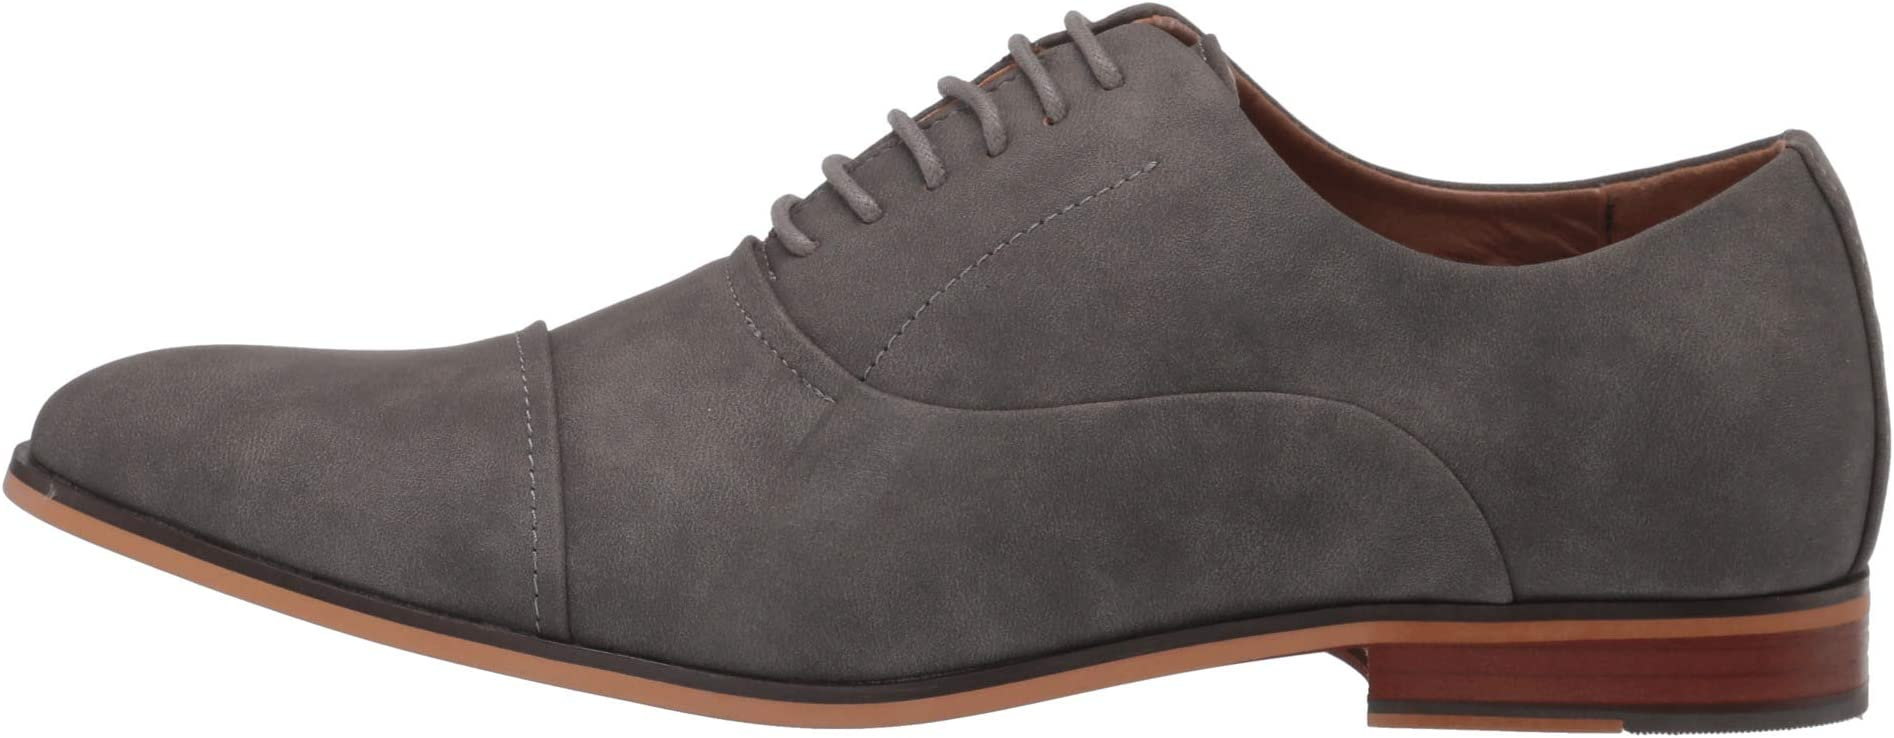 Madden by Steve Madden Dycon | Men's shoes | 2020 Newest